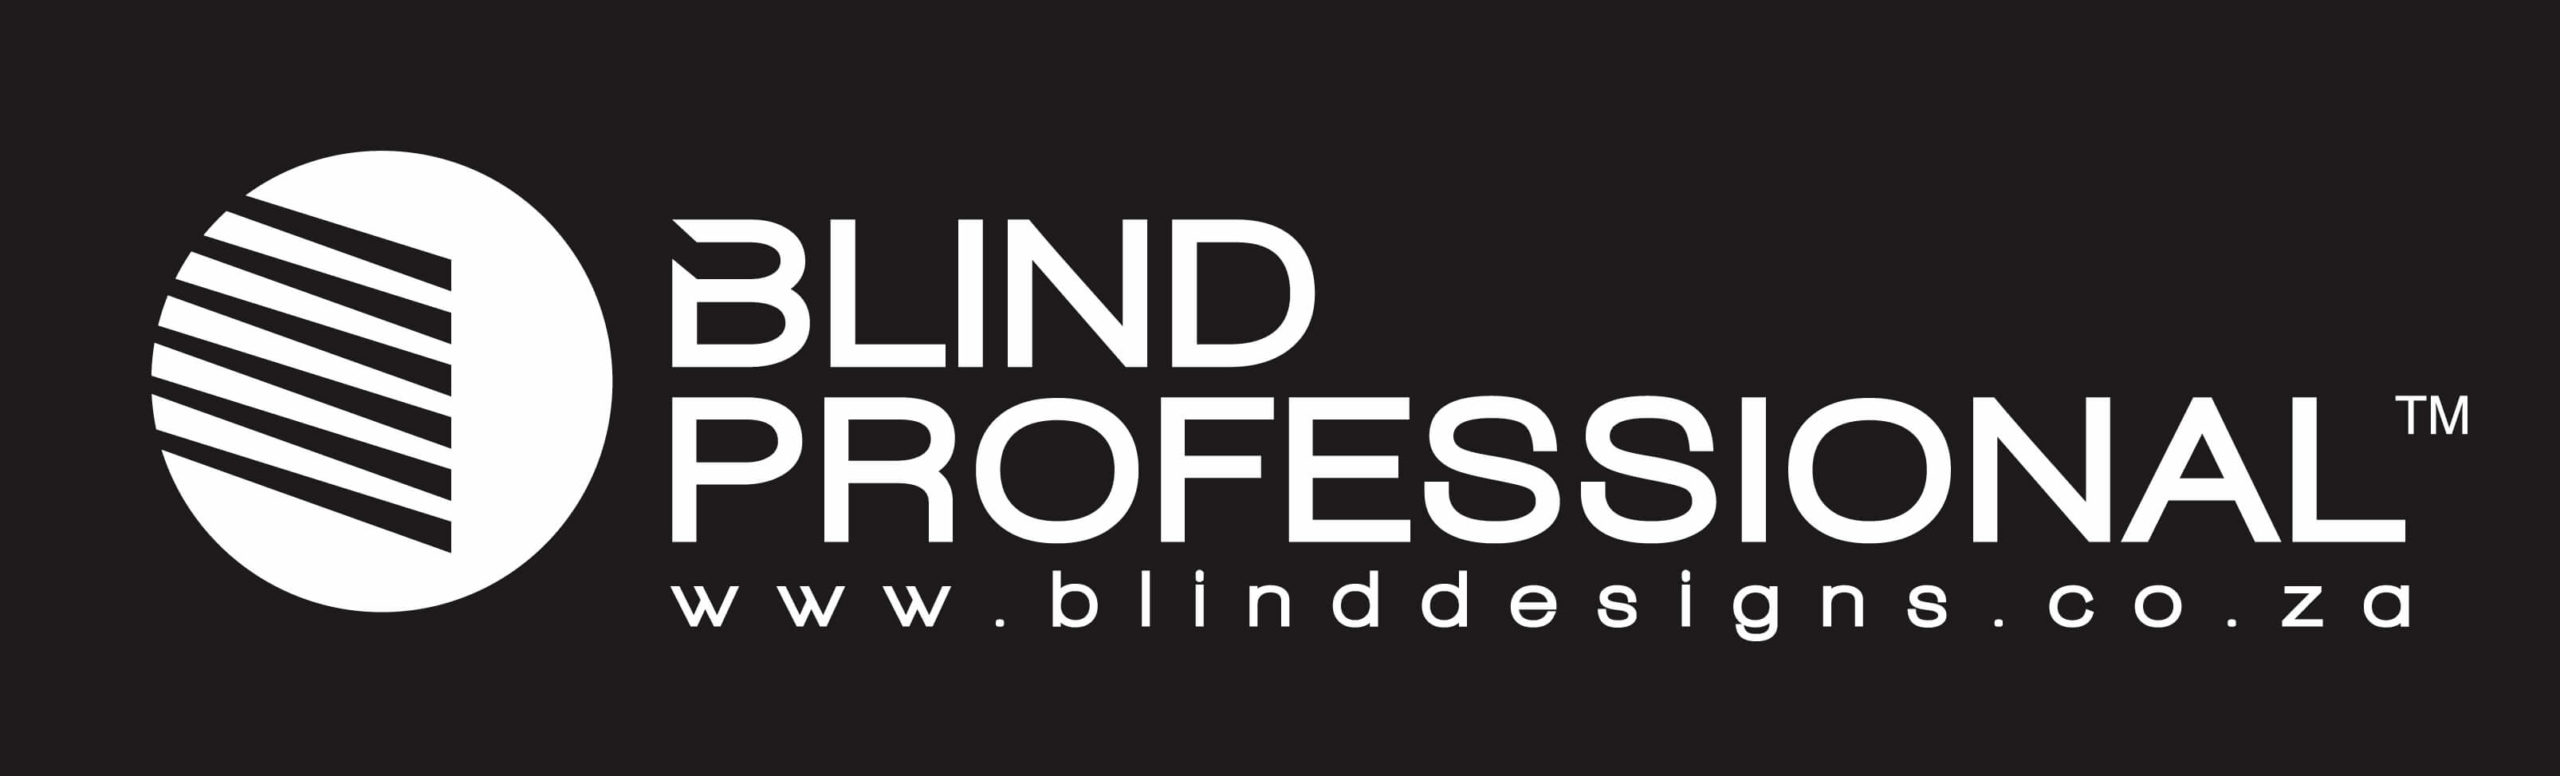 Blind Professional